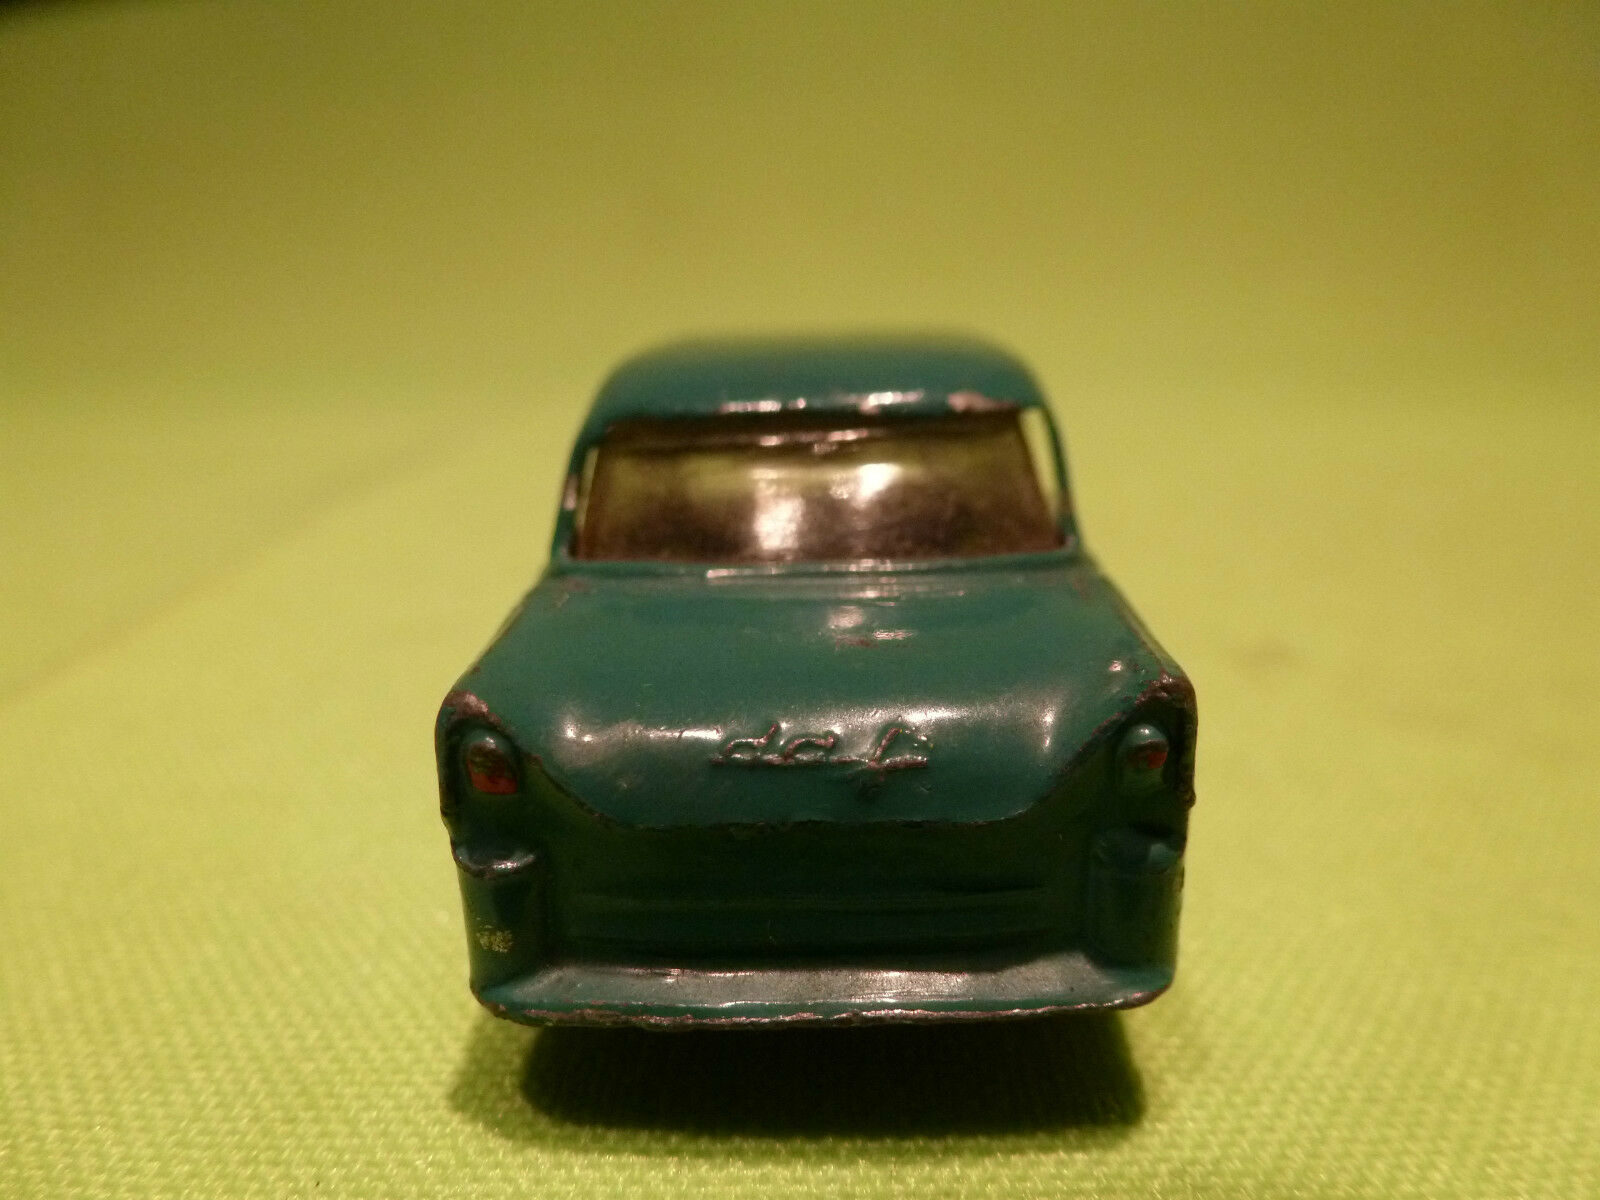 BEST BOX 501 DAF 600 - verde - 1 65 65 65 - IN  GOOD CONDITION c416a6